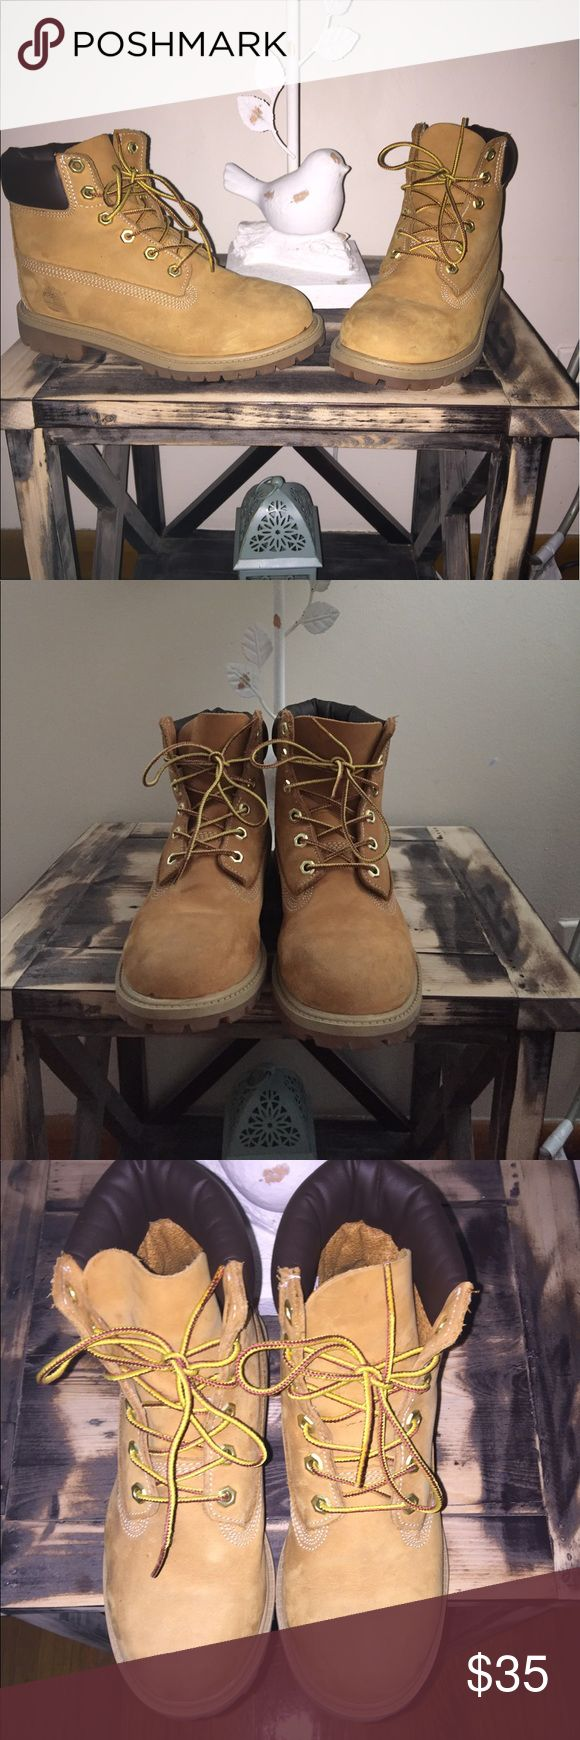 Kids timberland boots Kids timberland boots size 4.5 big kids. Great condition.... youth size Timberland Shoes Boots